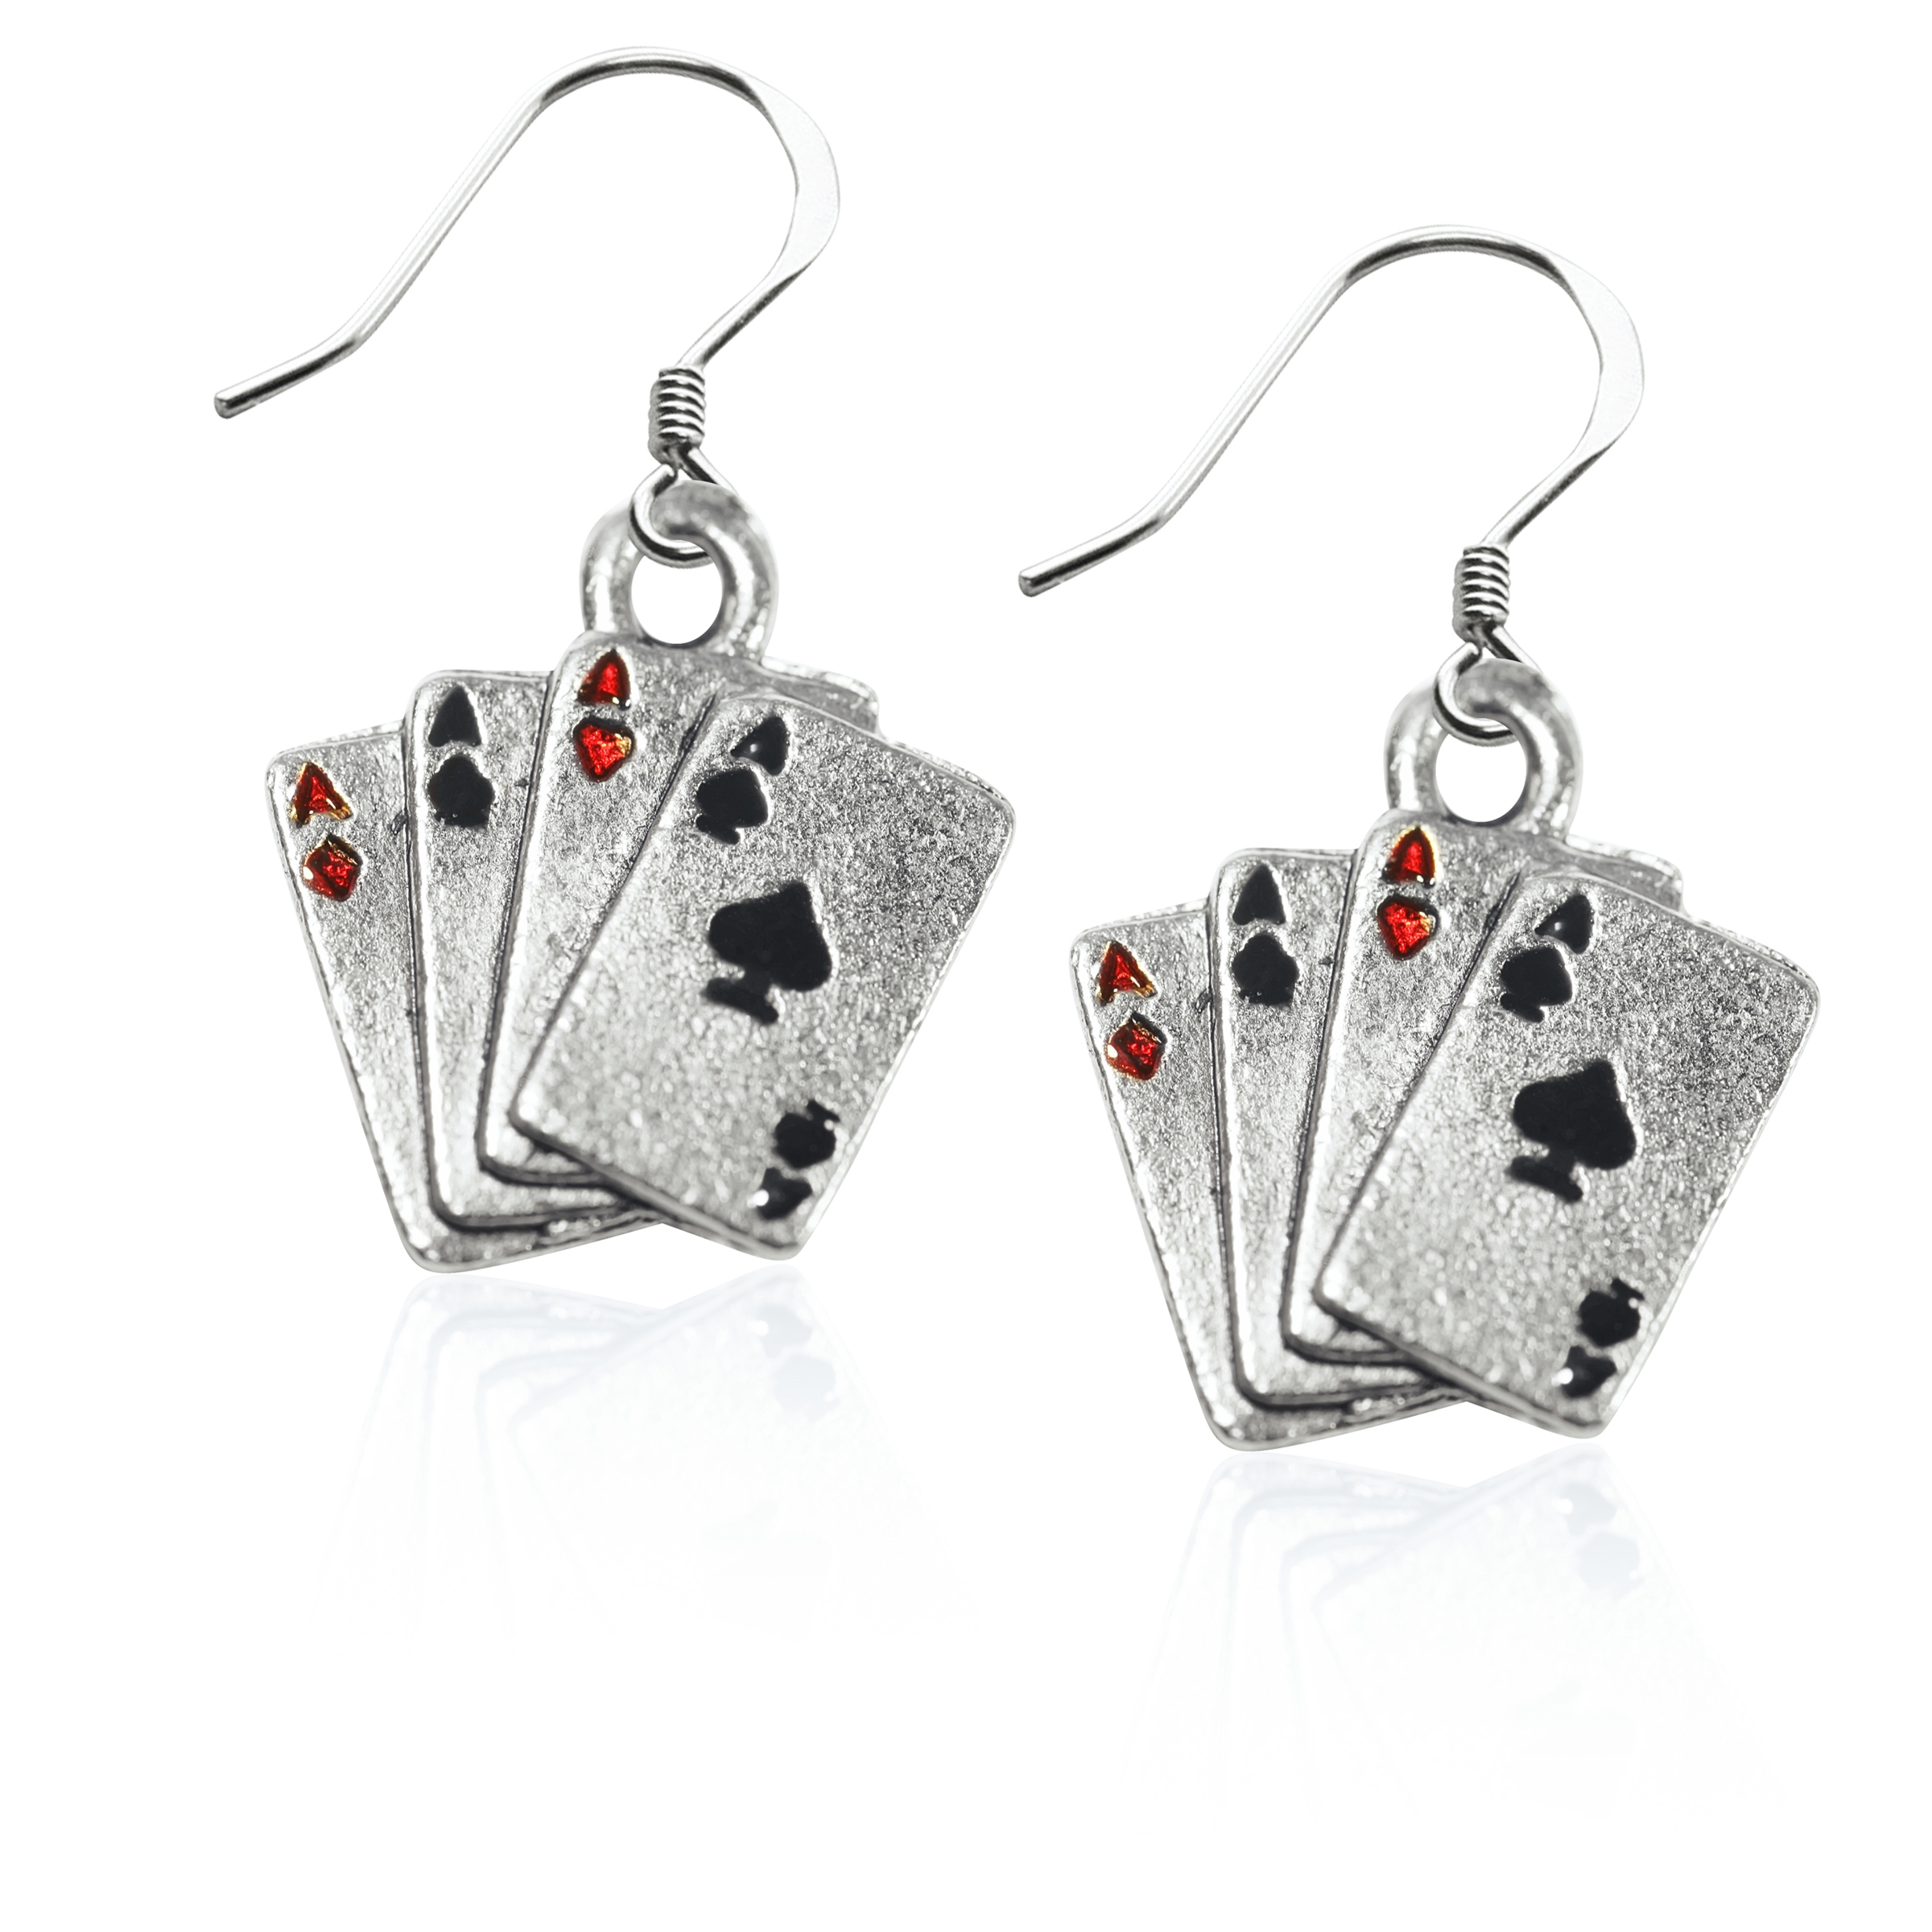 Image of Aces Charm Earrings in Silver